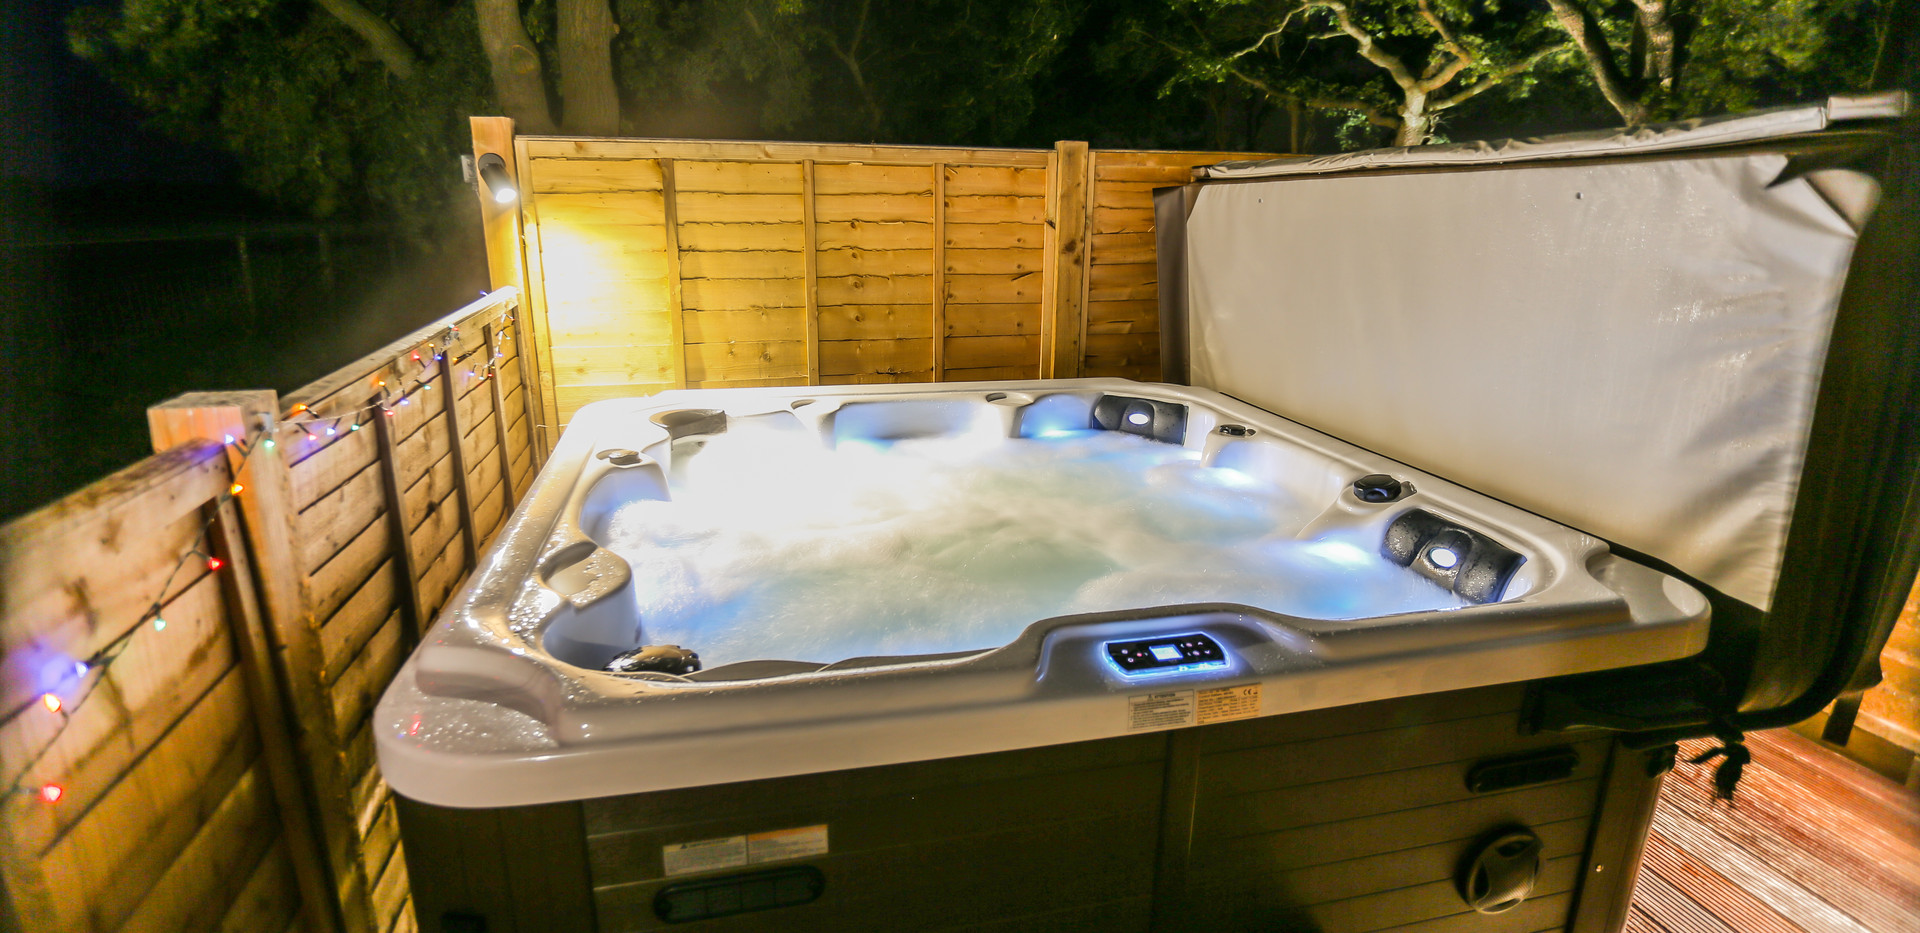 Hot tub with bluetooth for music